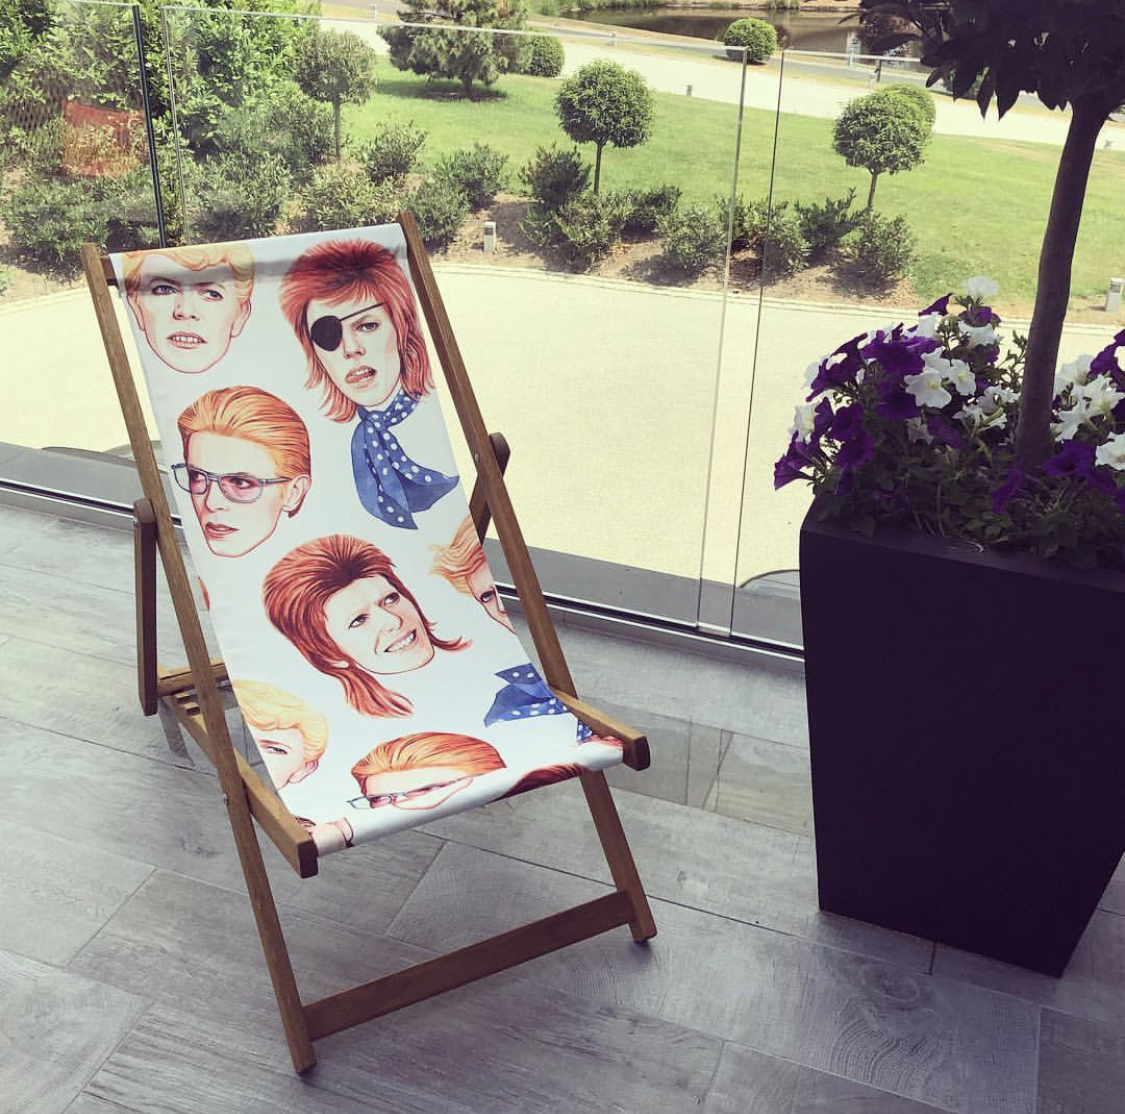 David Bowie gifts - choose inique garden deck chairs